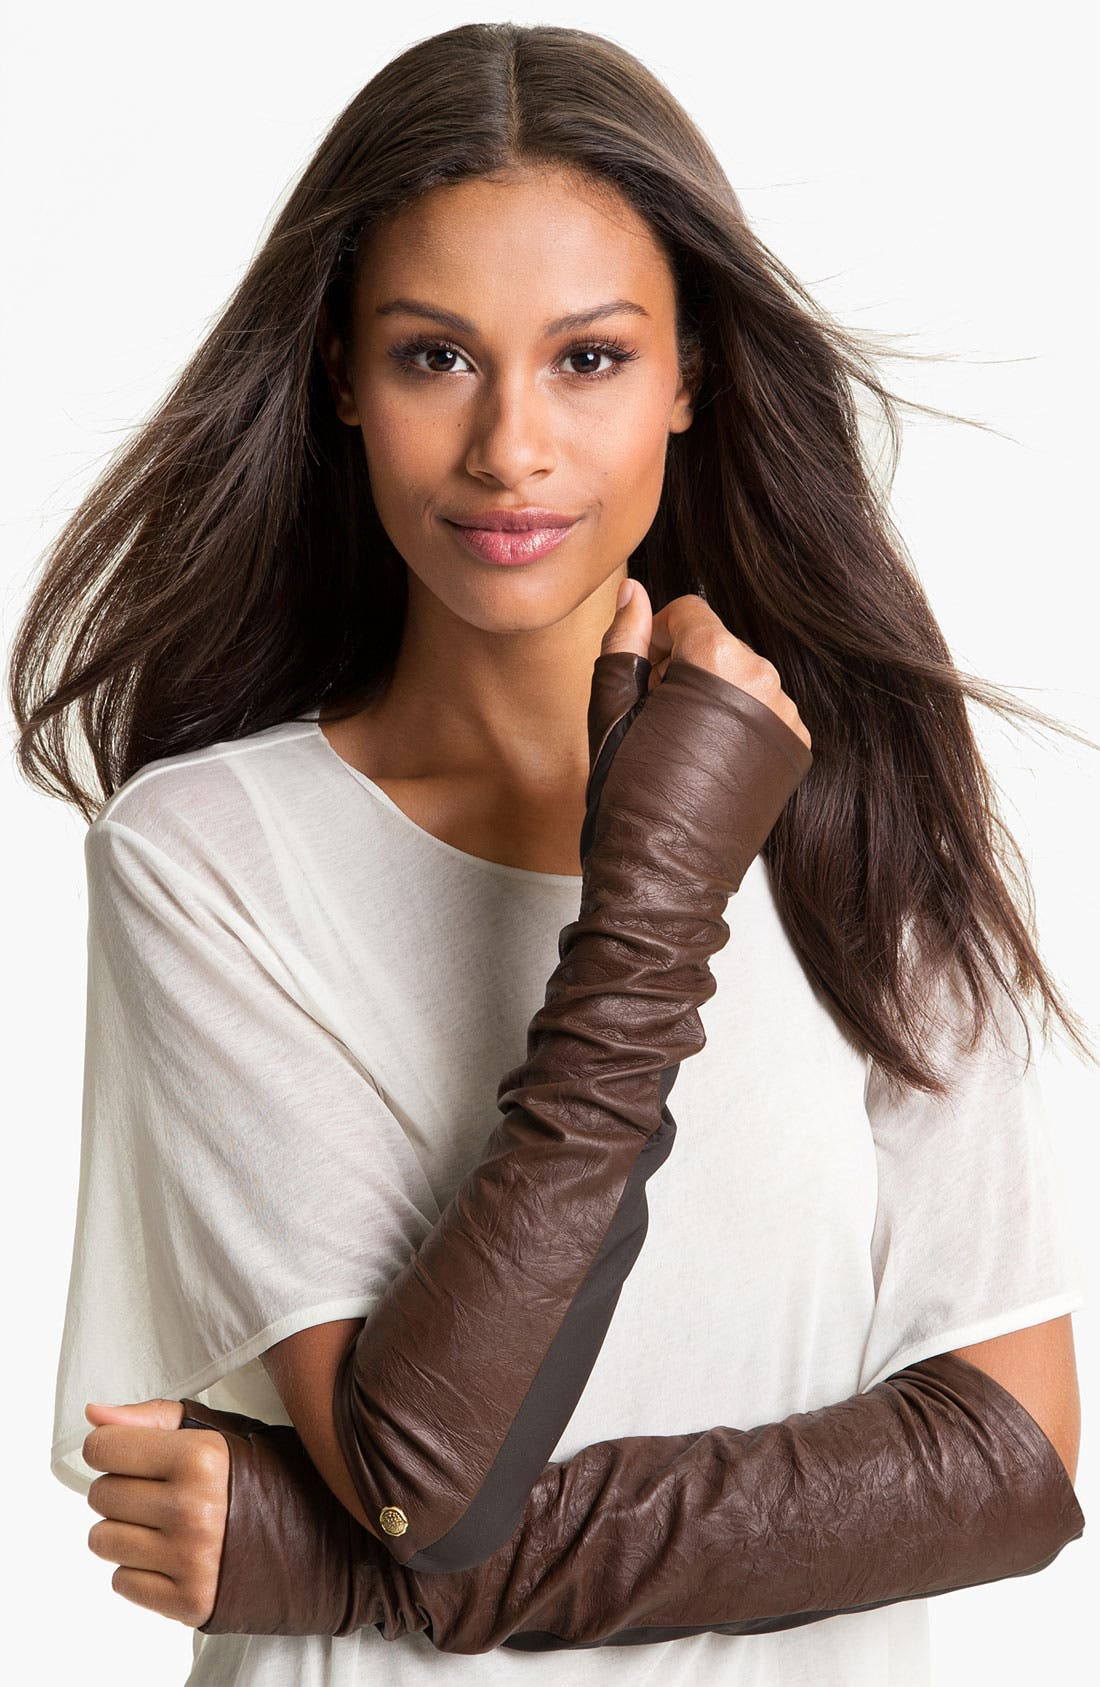 Alternate Image 1 Selected - Vince Camuto Washed Leather Fingerless Gloves